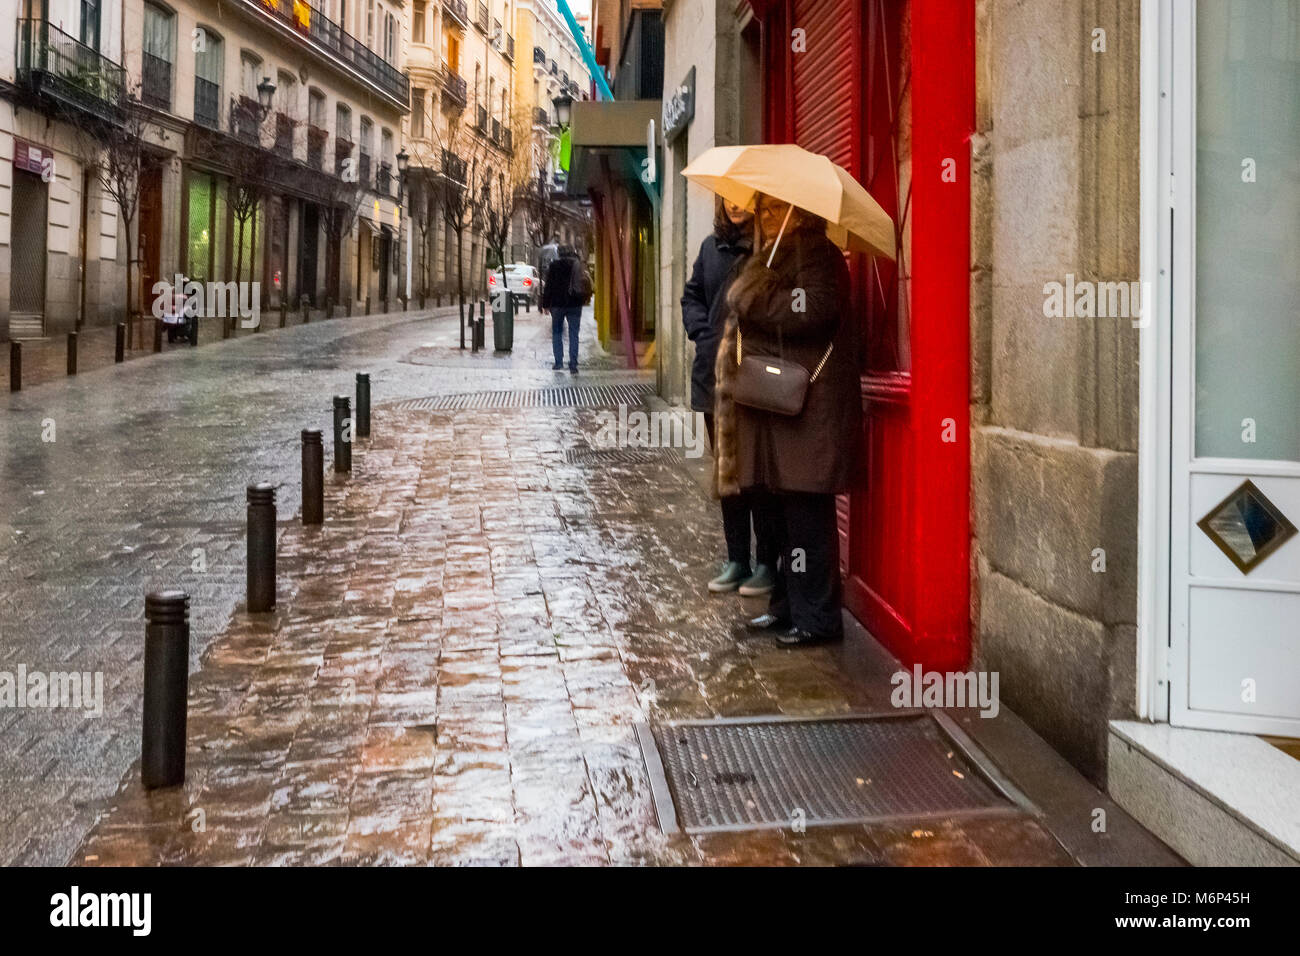 Two women carrying umbrellas sheltering from the rain in Madrid. - Stock Image